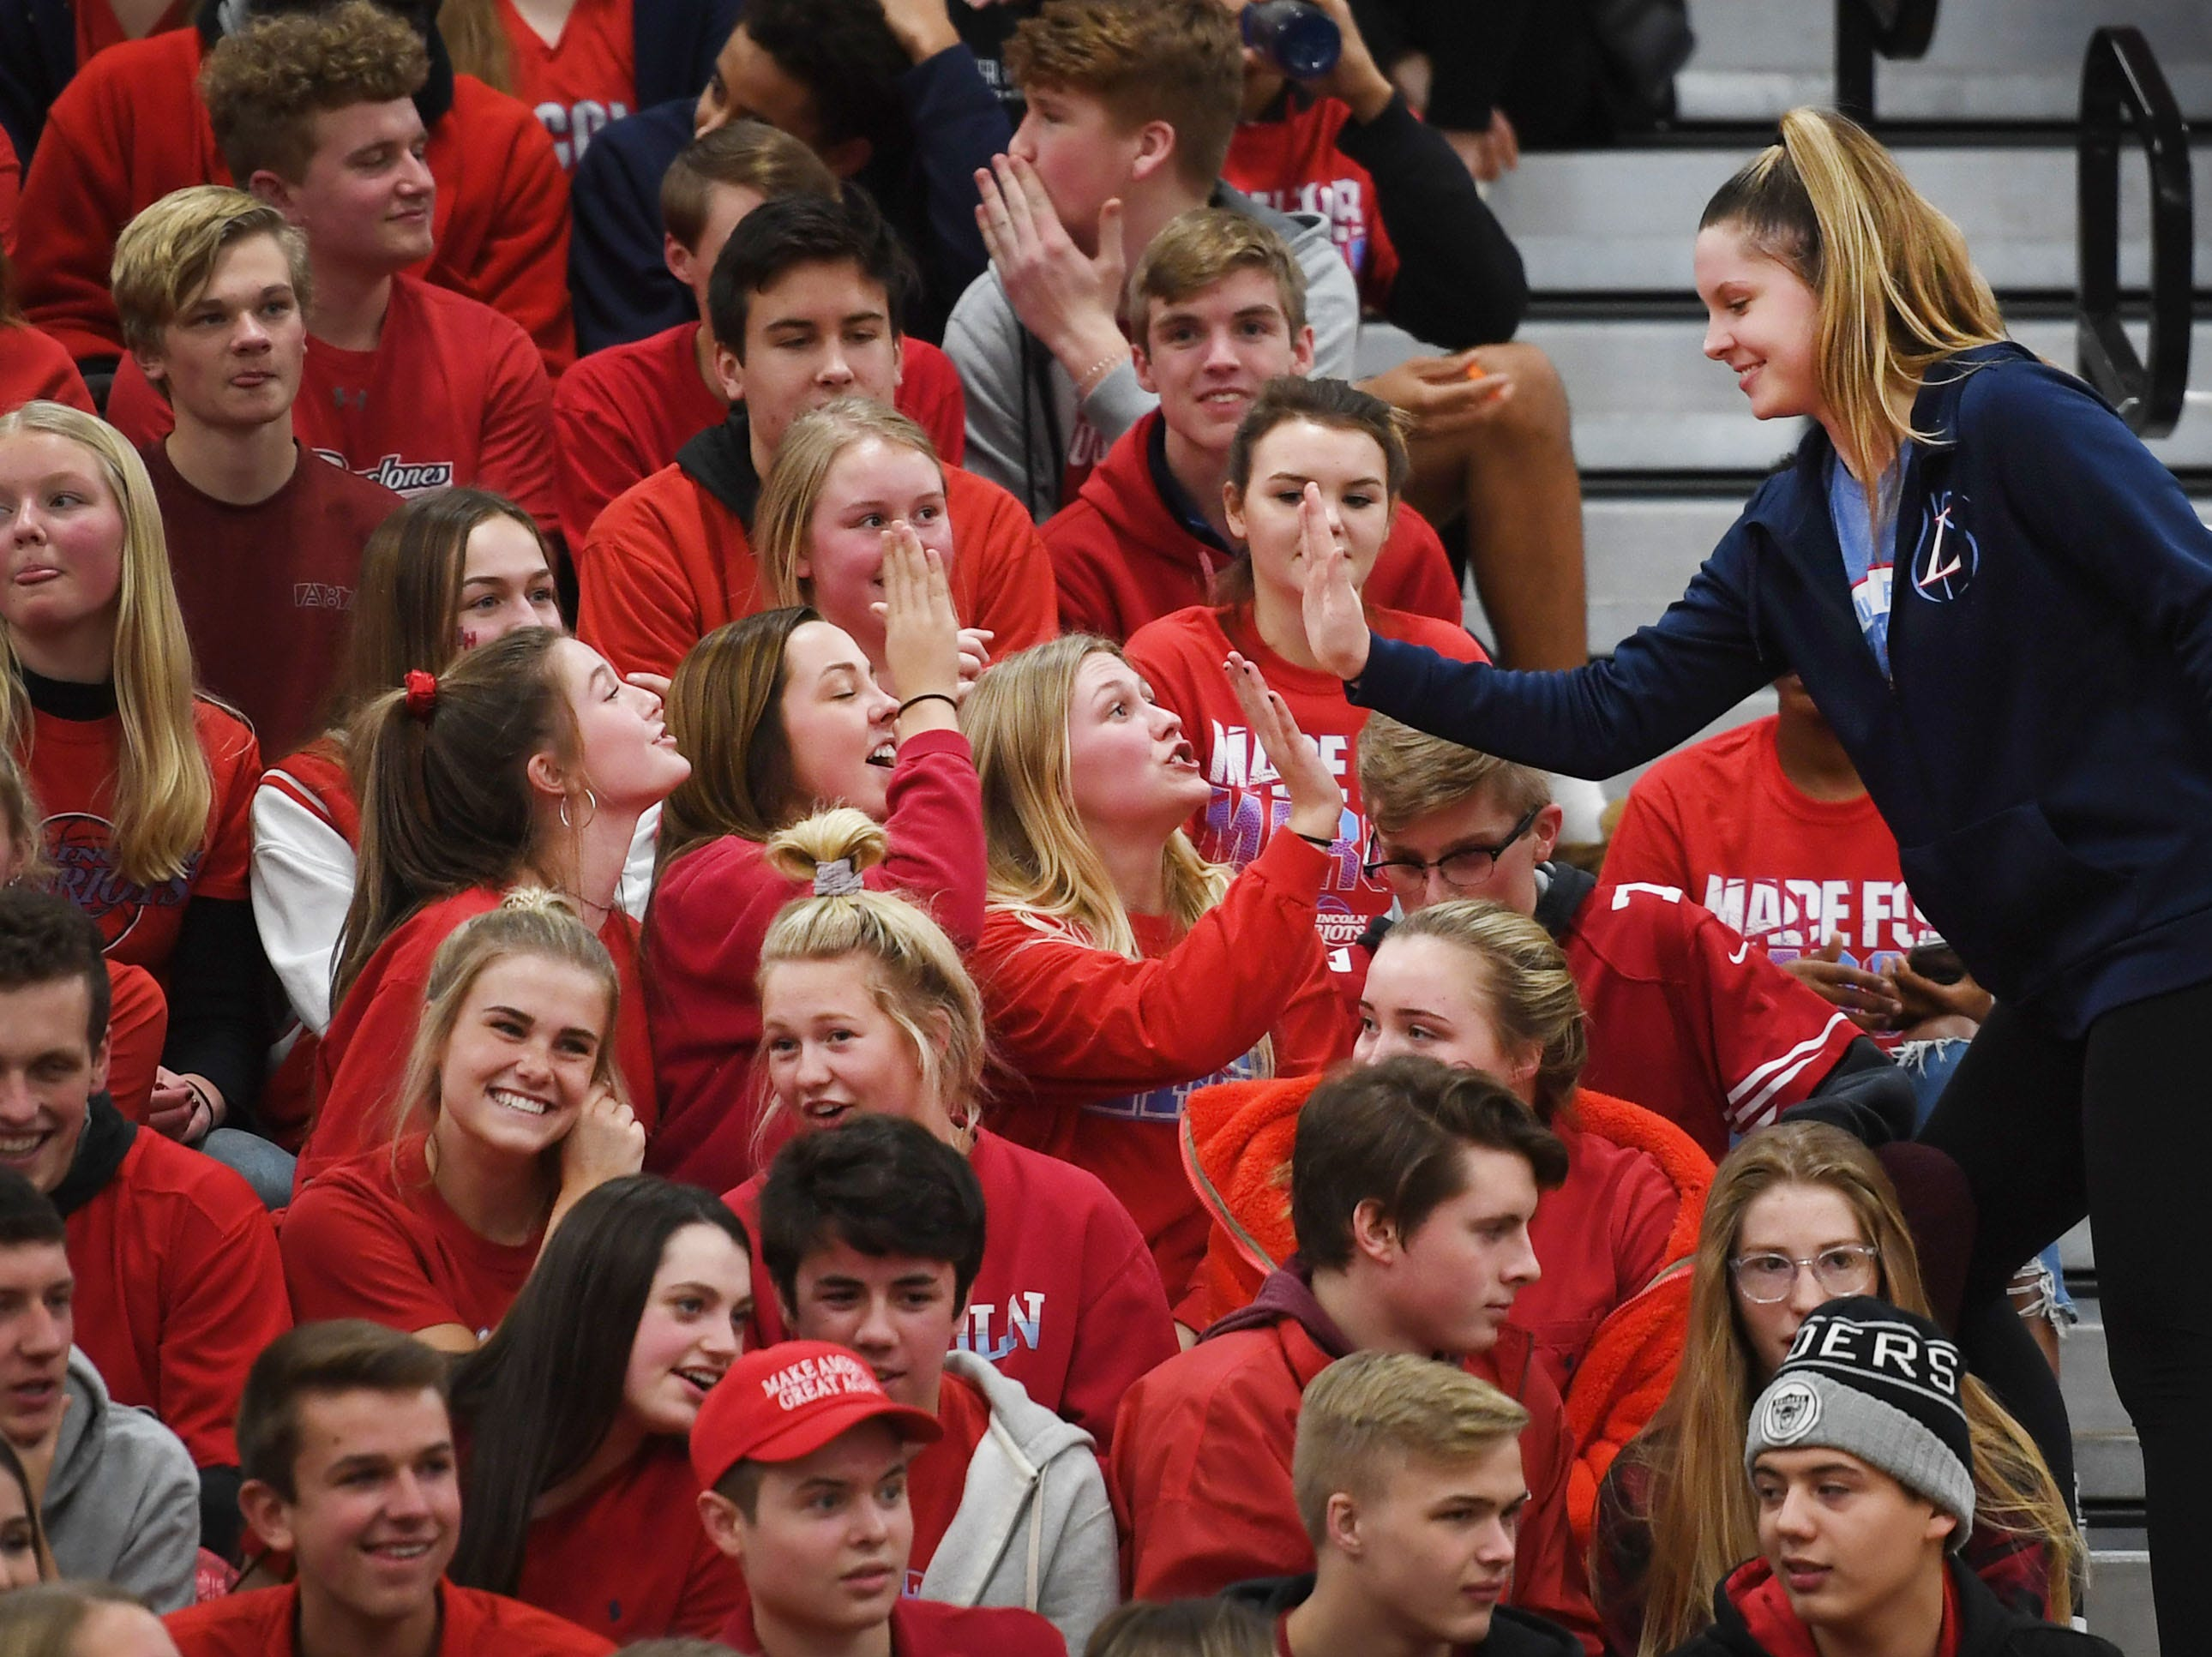 Lincoln students cheer for Emma Osmundson after the win against Washington before the boys game Thursday, Jan. 24, at Lincoln.